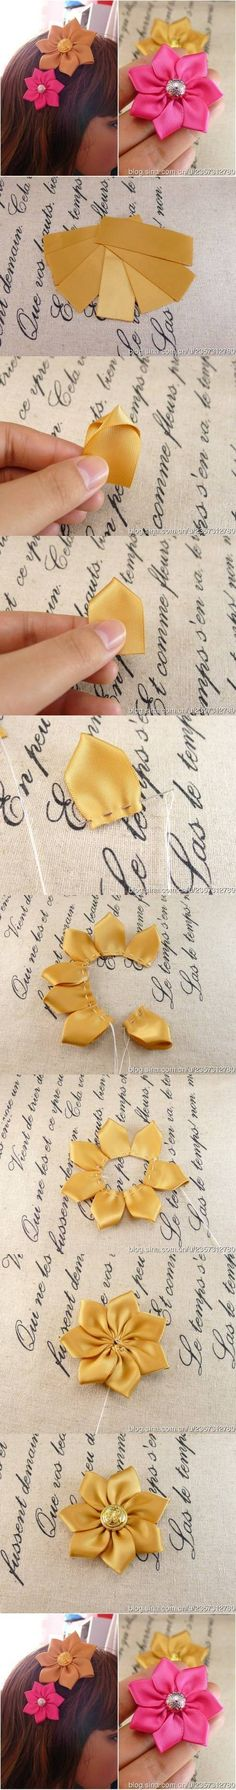 DIY Handmade Ribbon Flowers